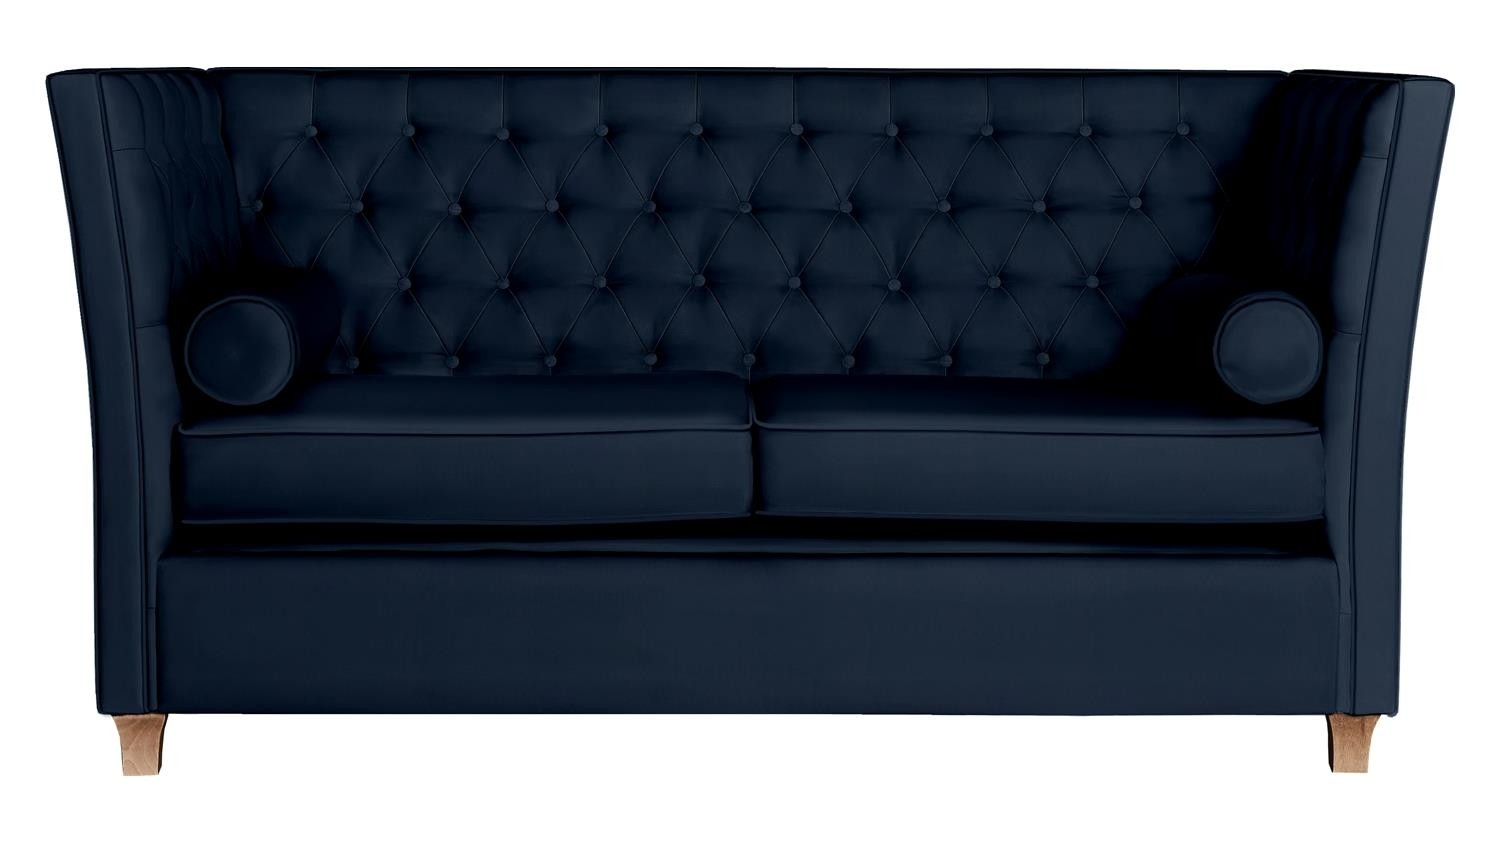 The Kingswood 2 Seater Sofa Bed